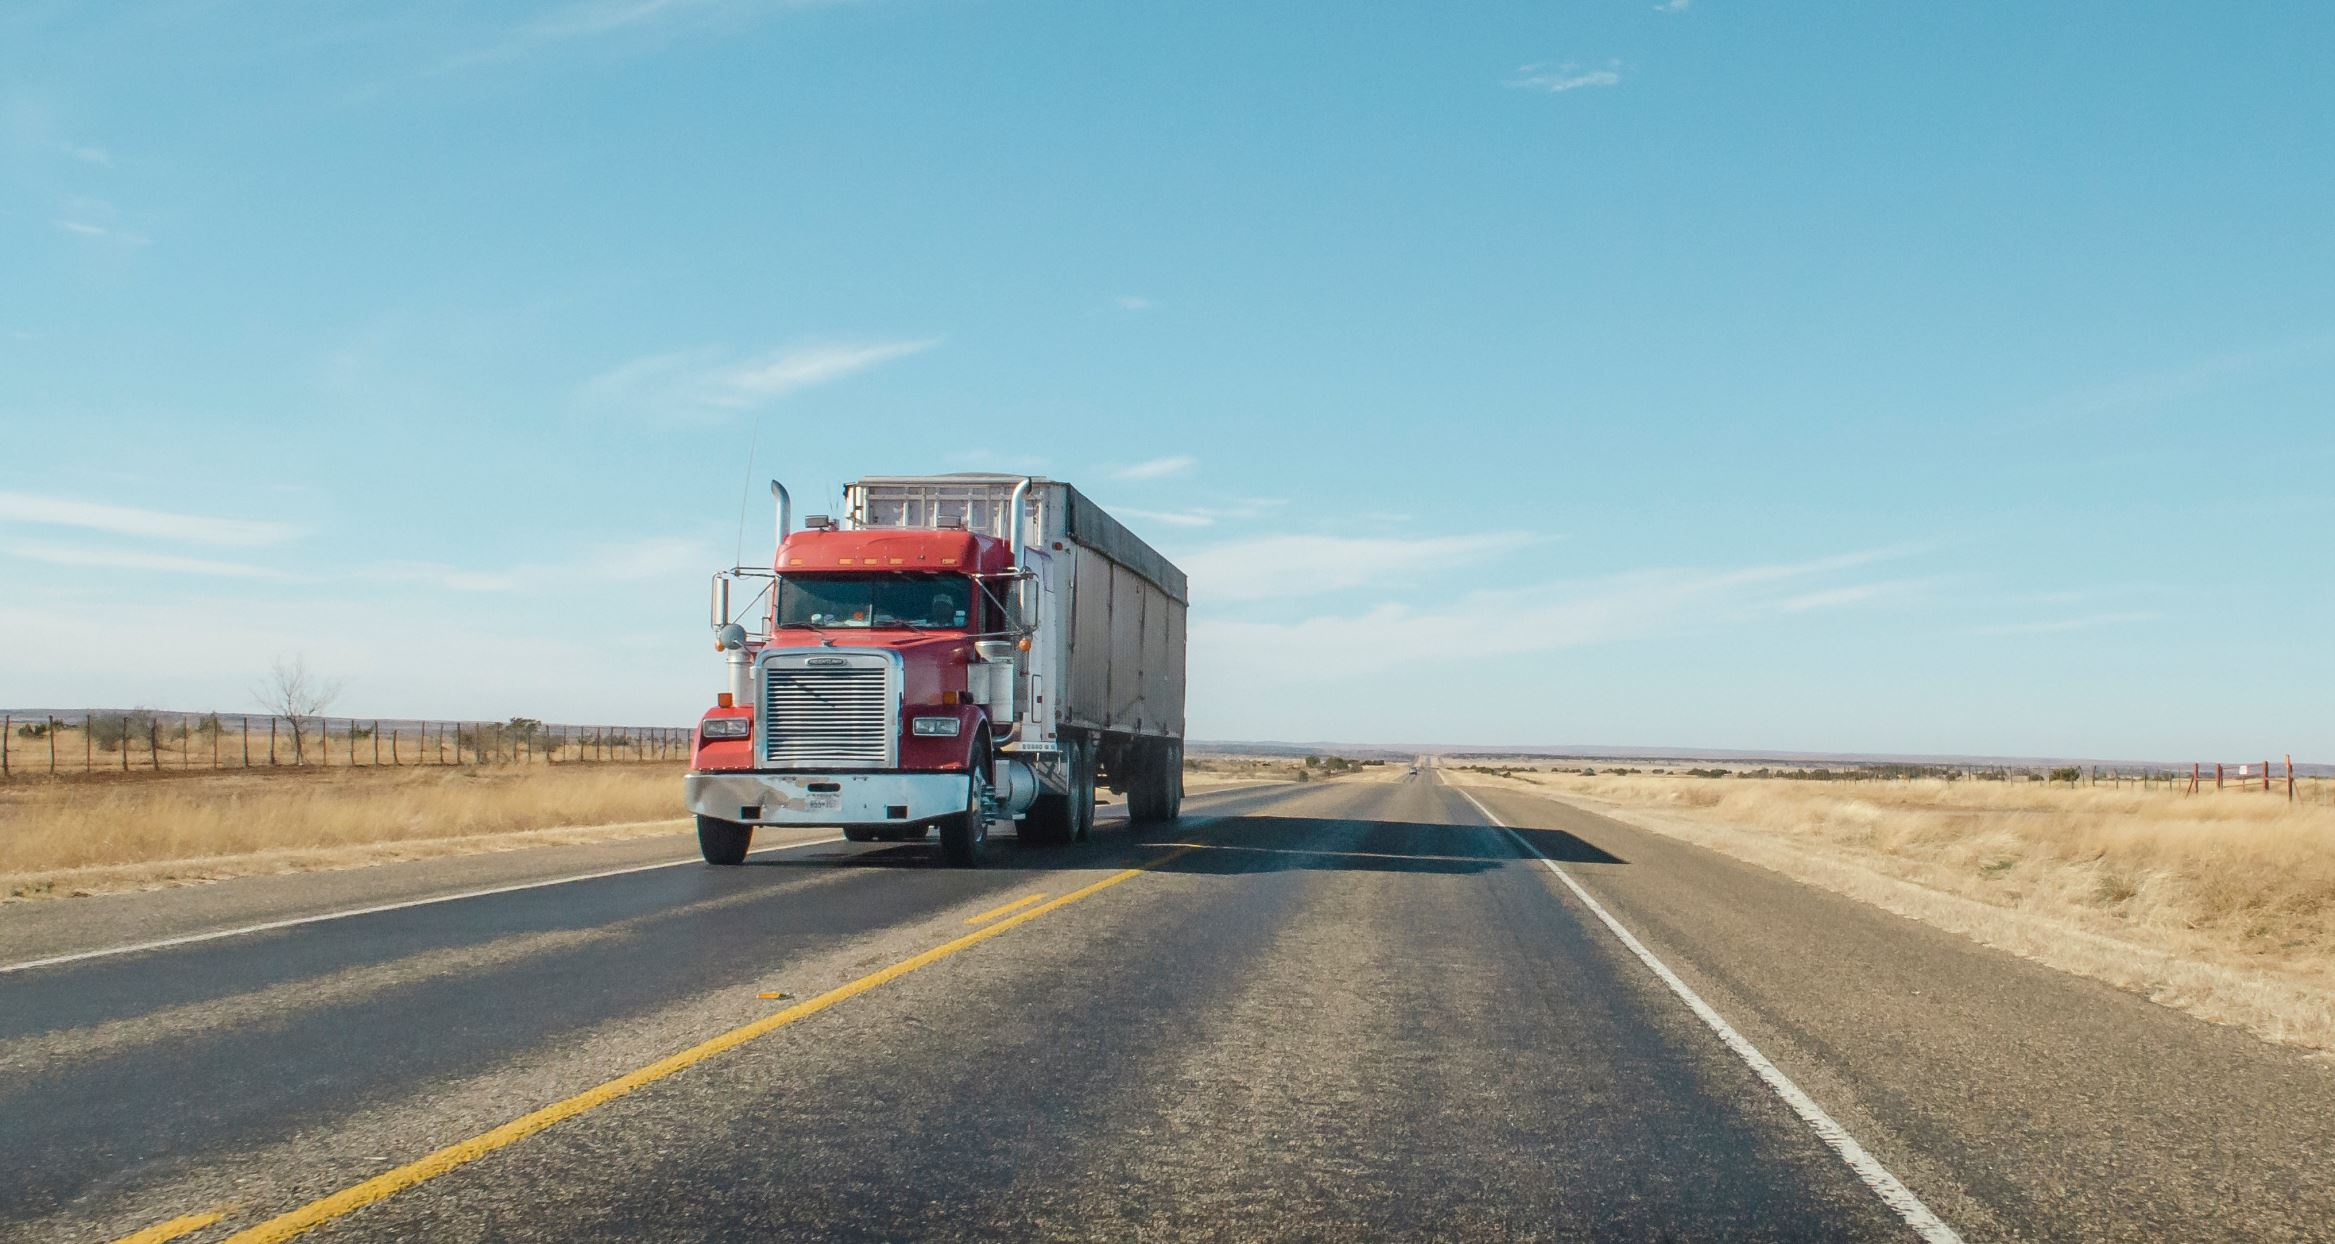 Heavy trucks such as this 18-wheeler contribute a significant fraction of the world's greenhouse gas emissions. MIT researchers say these emissions could be drastically reduced by using flex-fuel plug-in hybrid powertrains instead of diesel engines.  - Image Credit:  Matthew T Rader via Unsplash